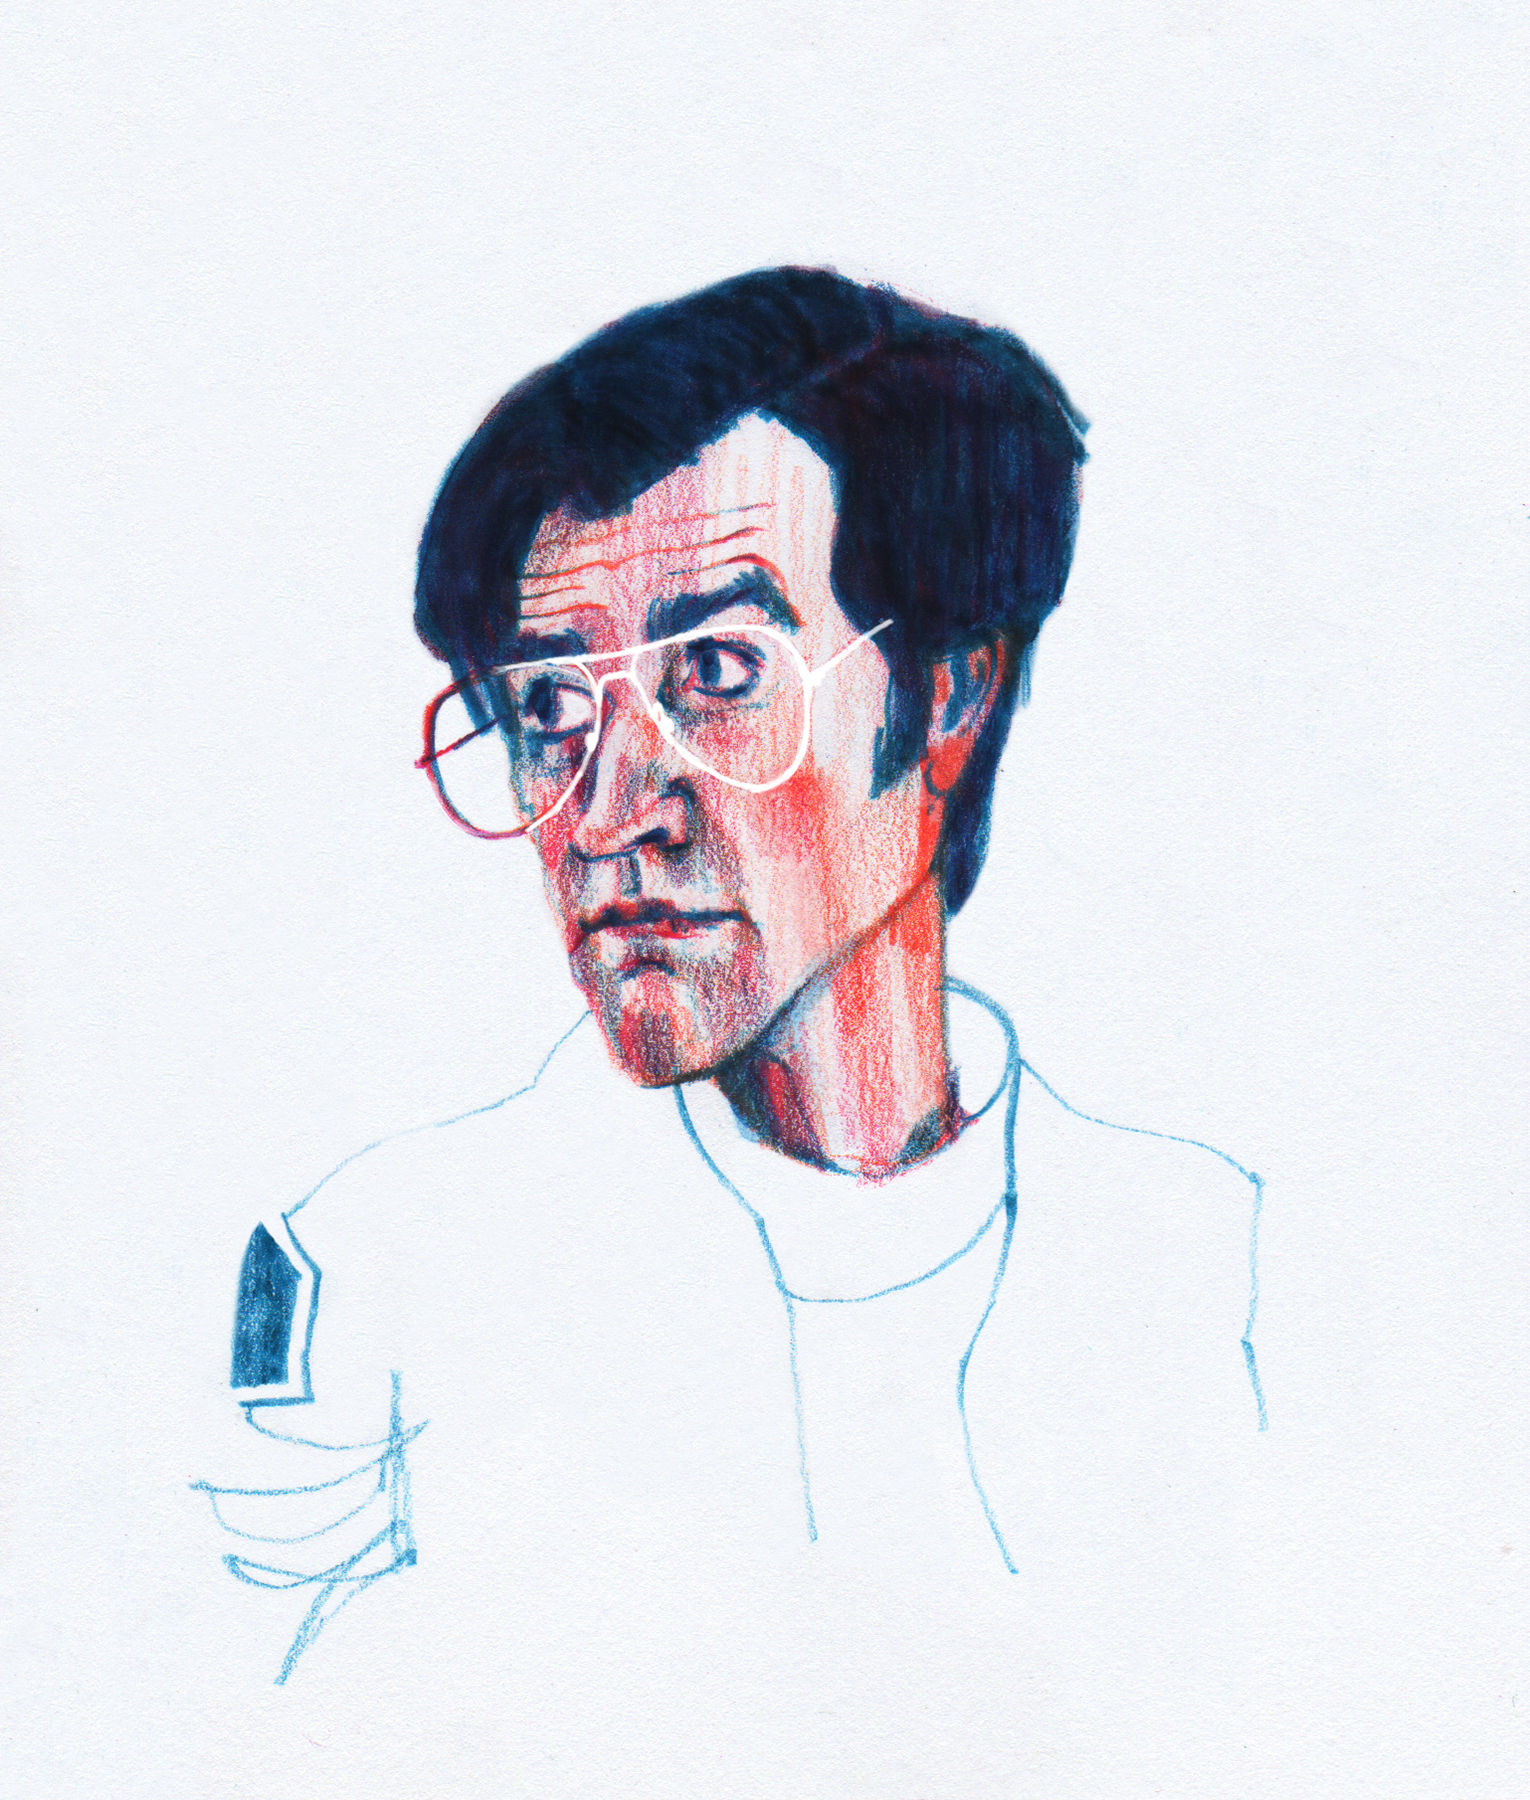 """Dr. Mantleray (Justin Theroux) from """"Maniac"""""""